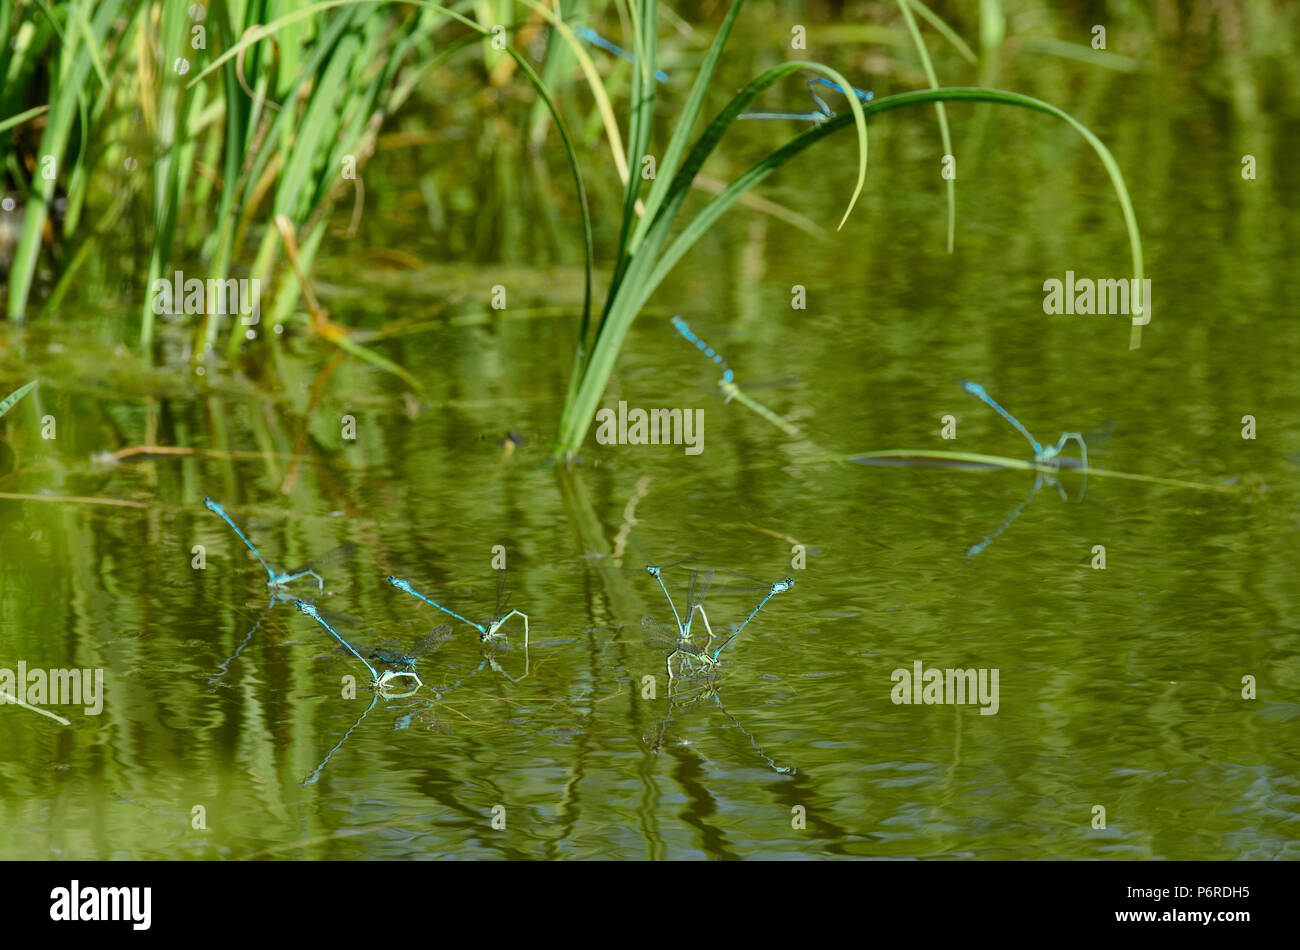 Breeding season of dragonflies species blue damselfly on the surface of the pond with green vegetation - Stock Image